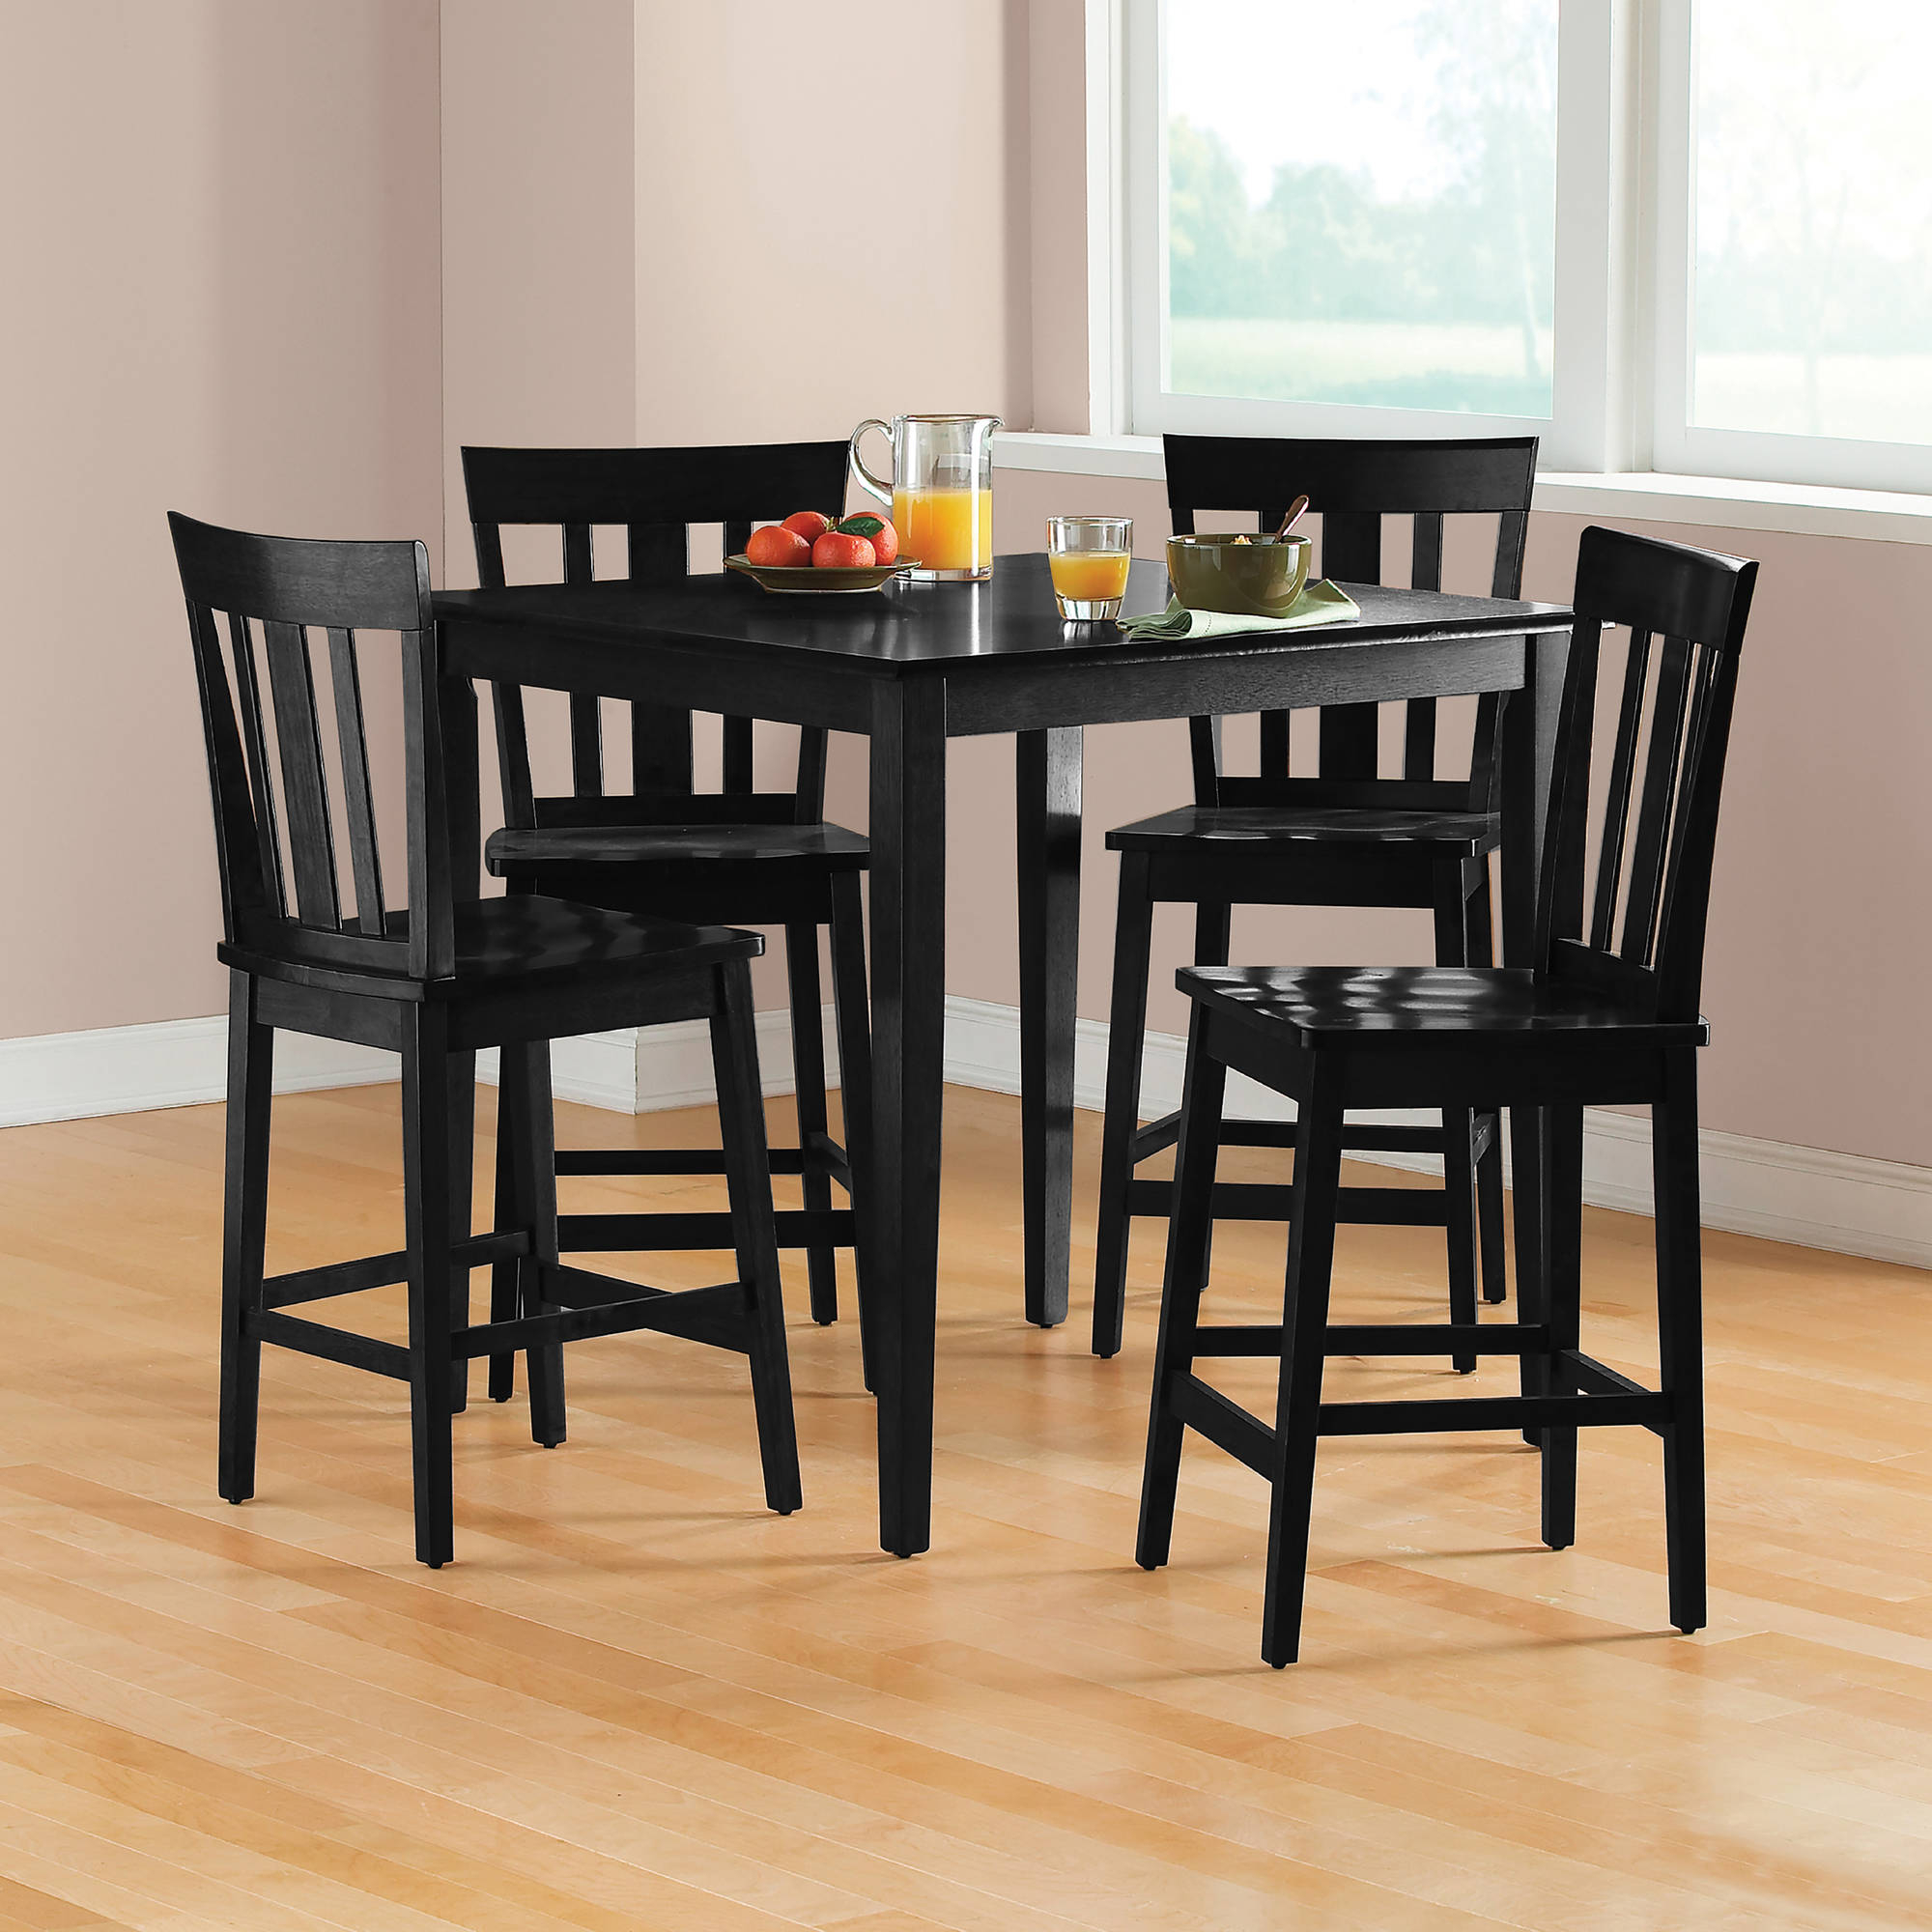 2019 Sheetz 3 Piece Counter Height Dining Sets In Mainstays 5 Piece Mission Counter Height Dining Set – Walmart (View 1 of 25)